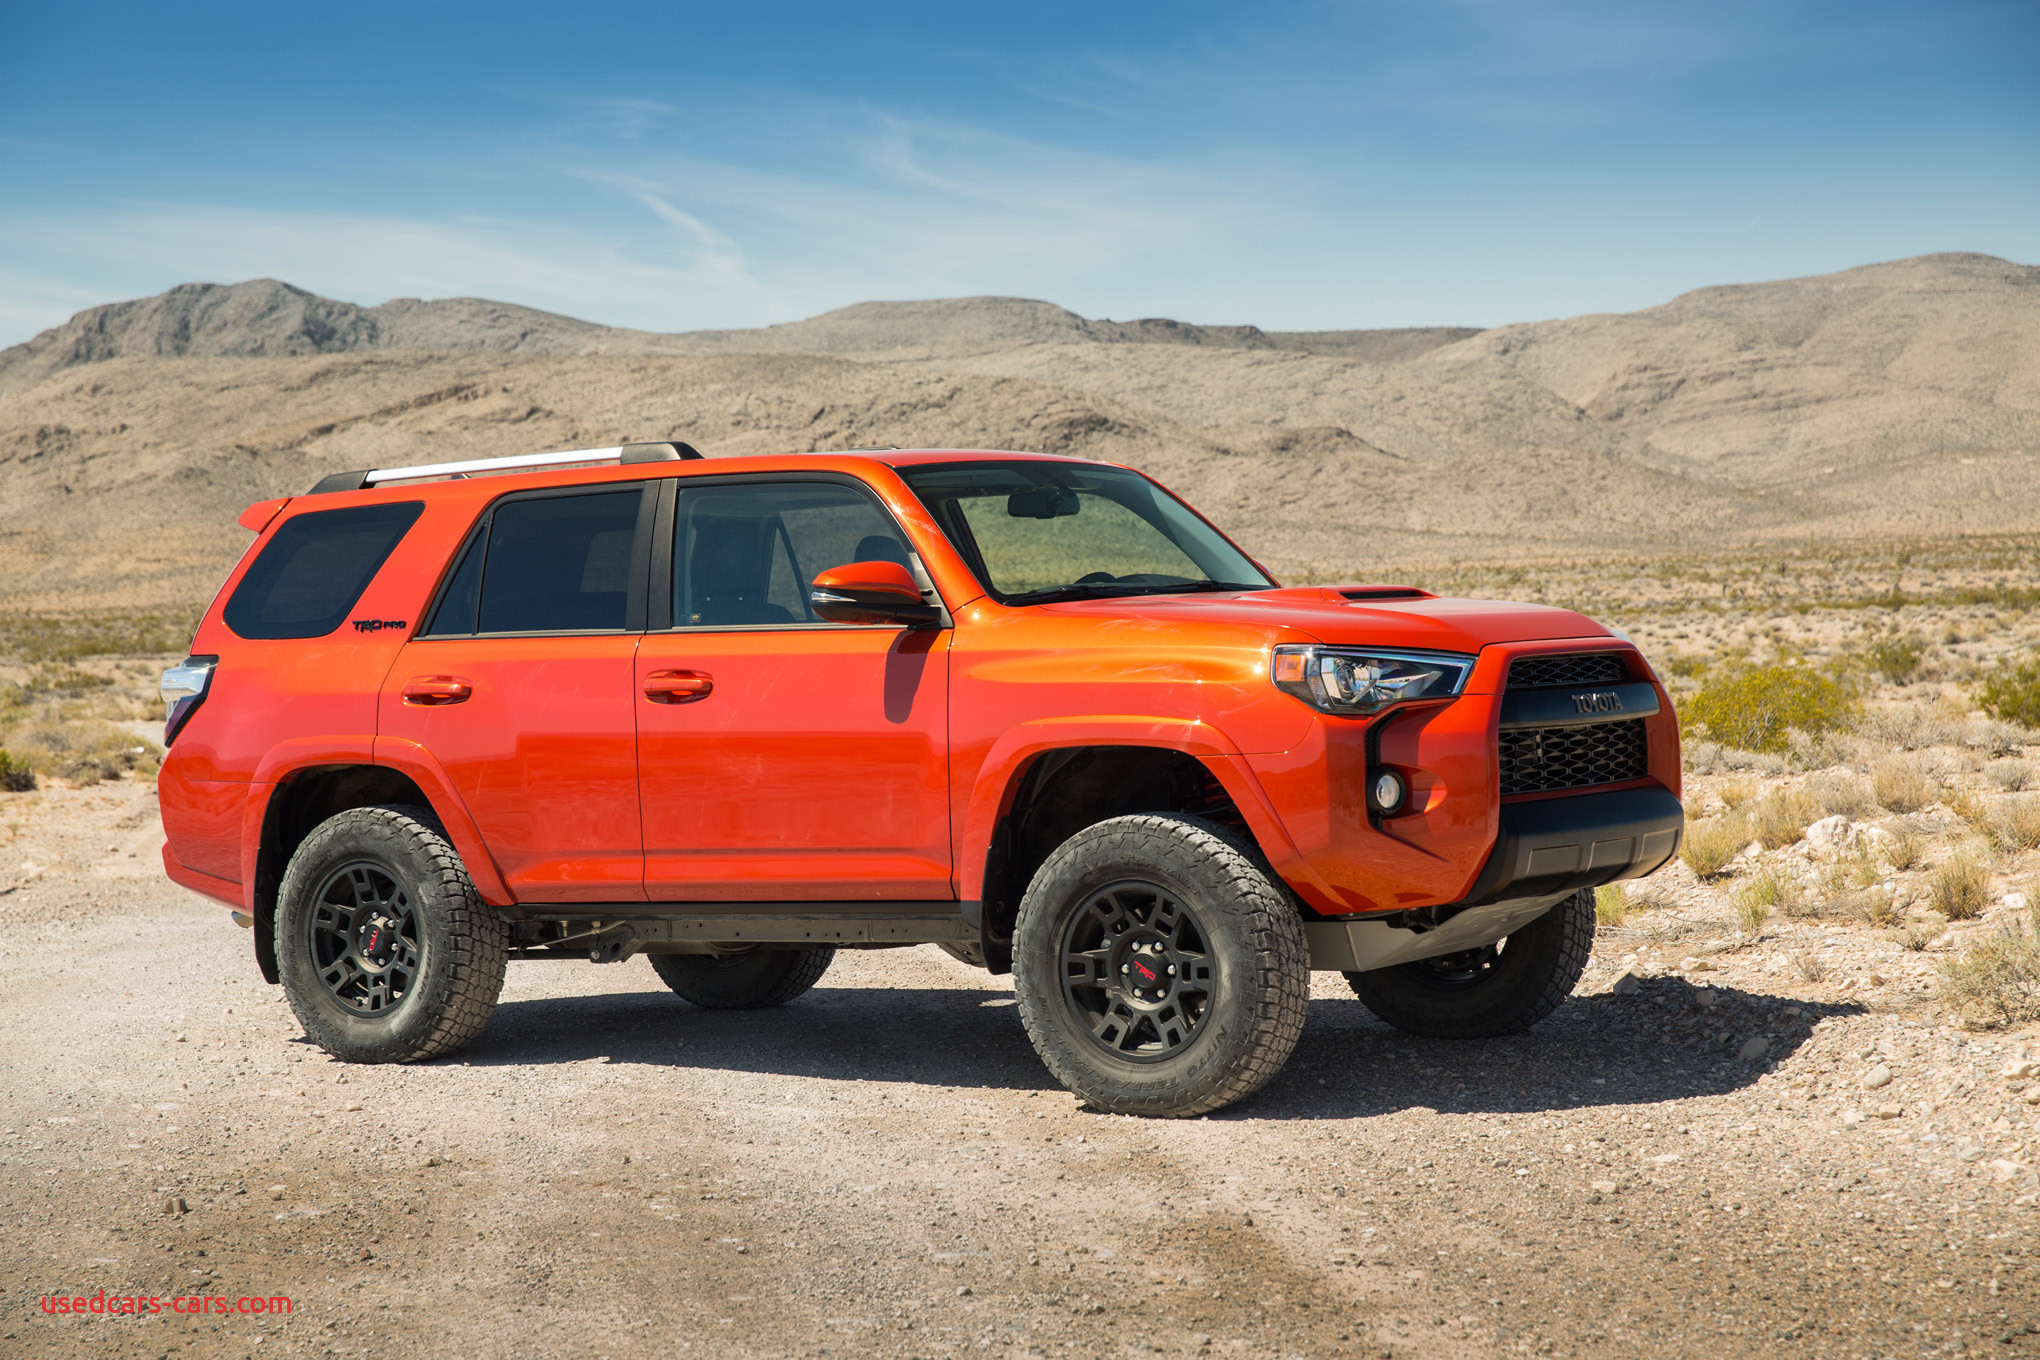 2015 4runner Dimensions Awesome 2015 toyota 4runner Specifications Pricing Photos